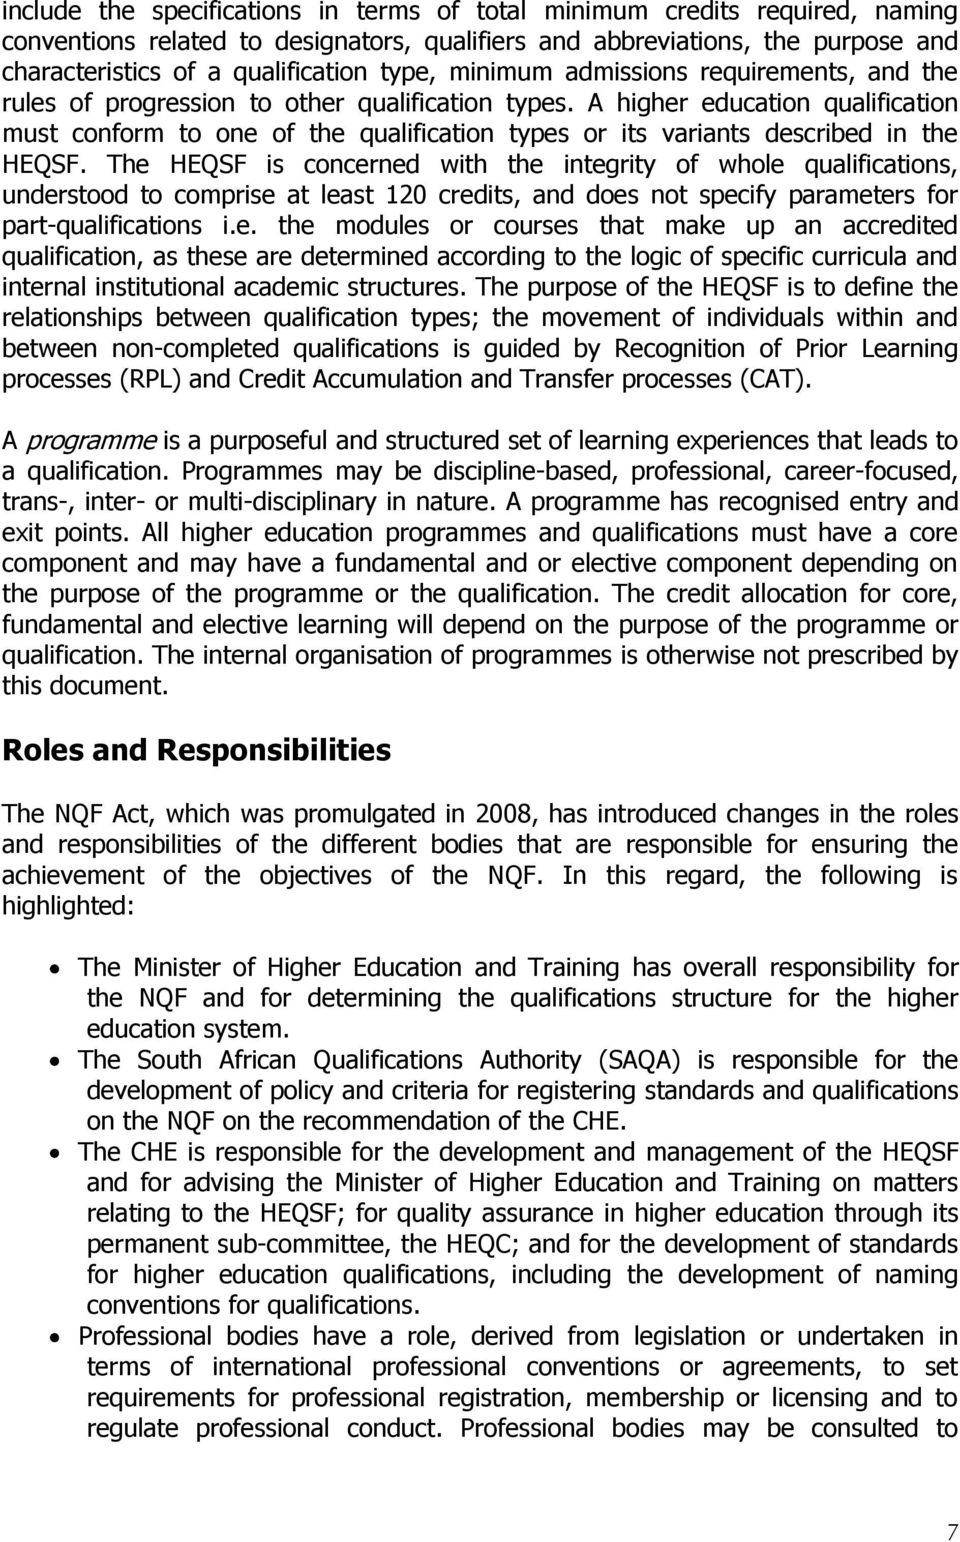 A higher education qualification must conform to one of the qualification types or its variants described in the HEQSF.